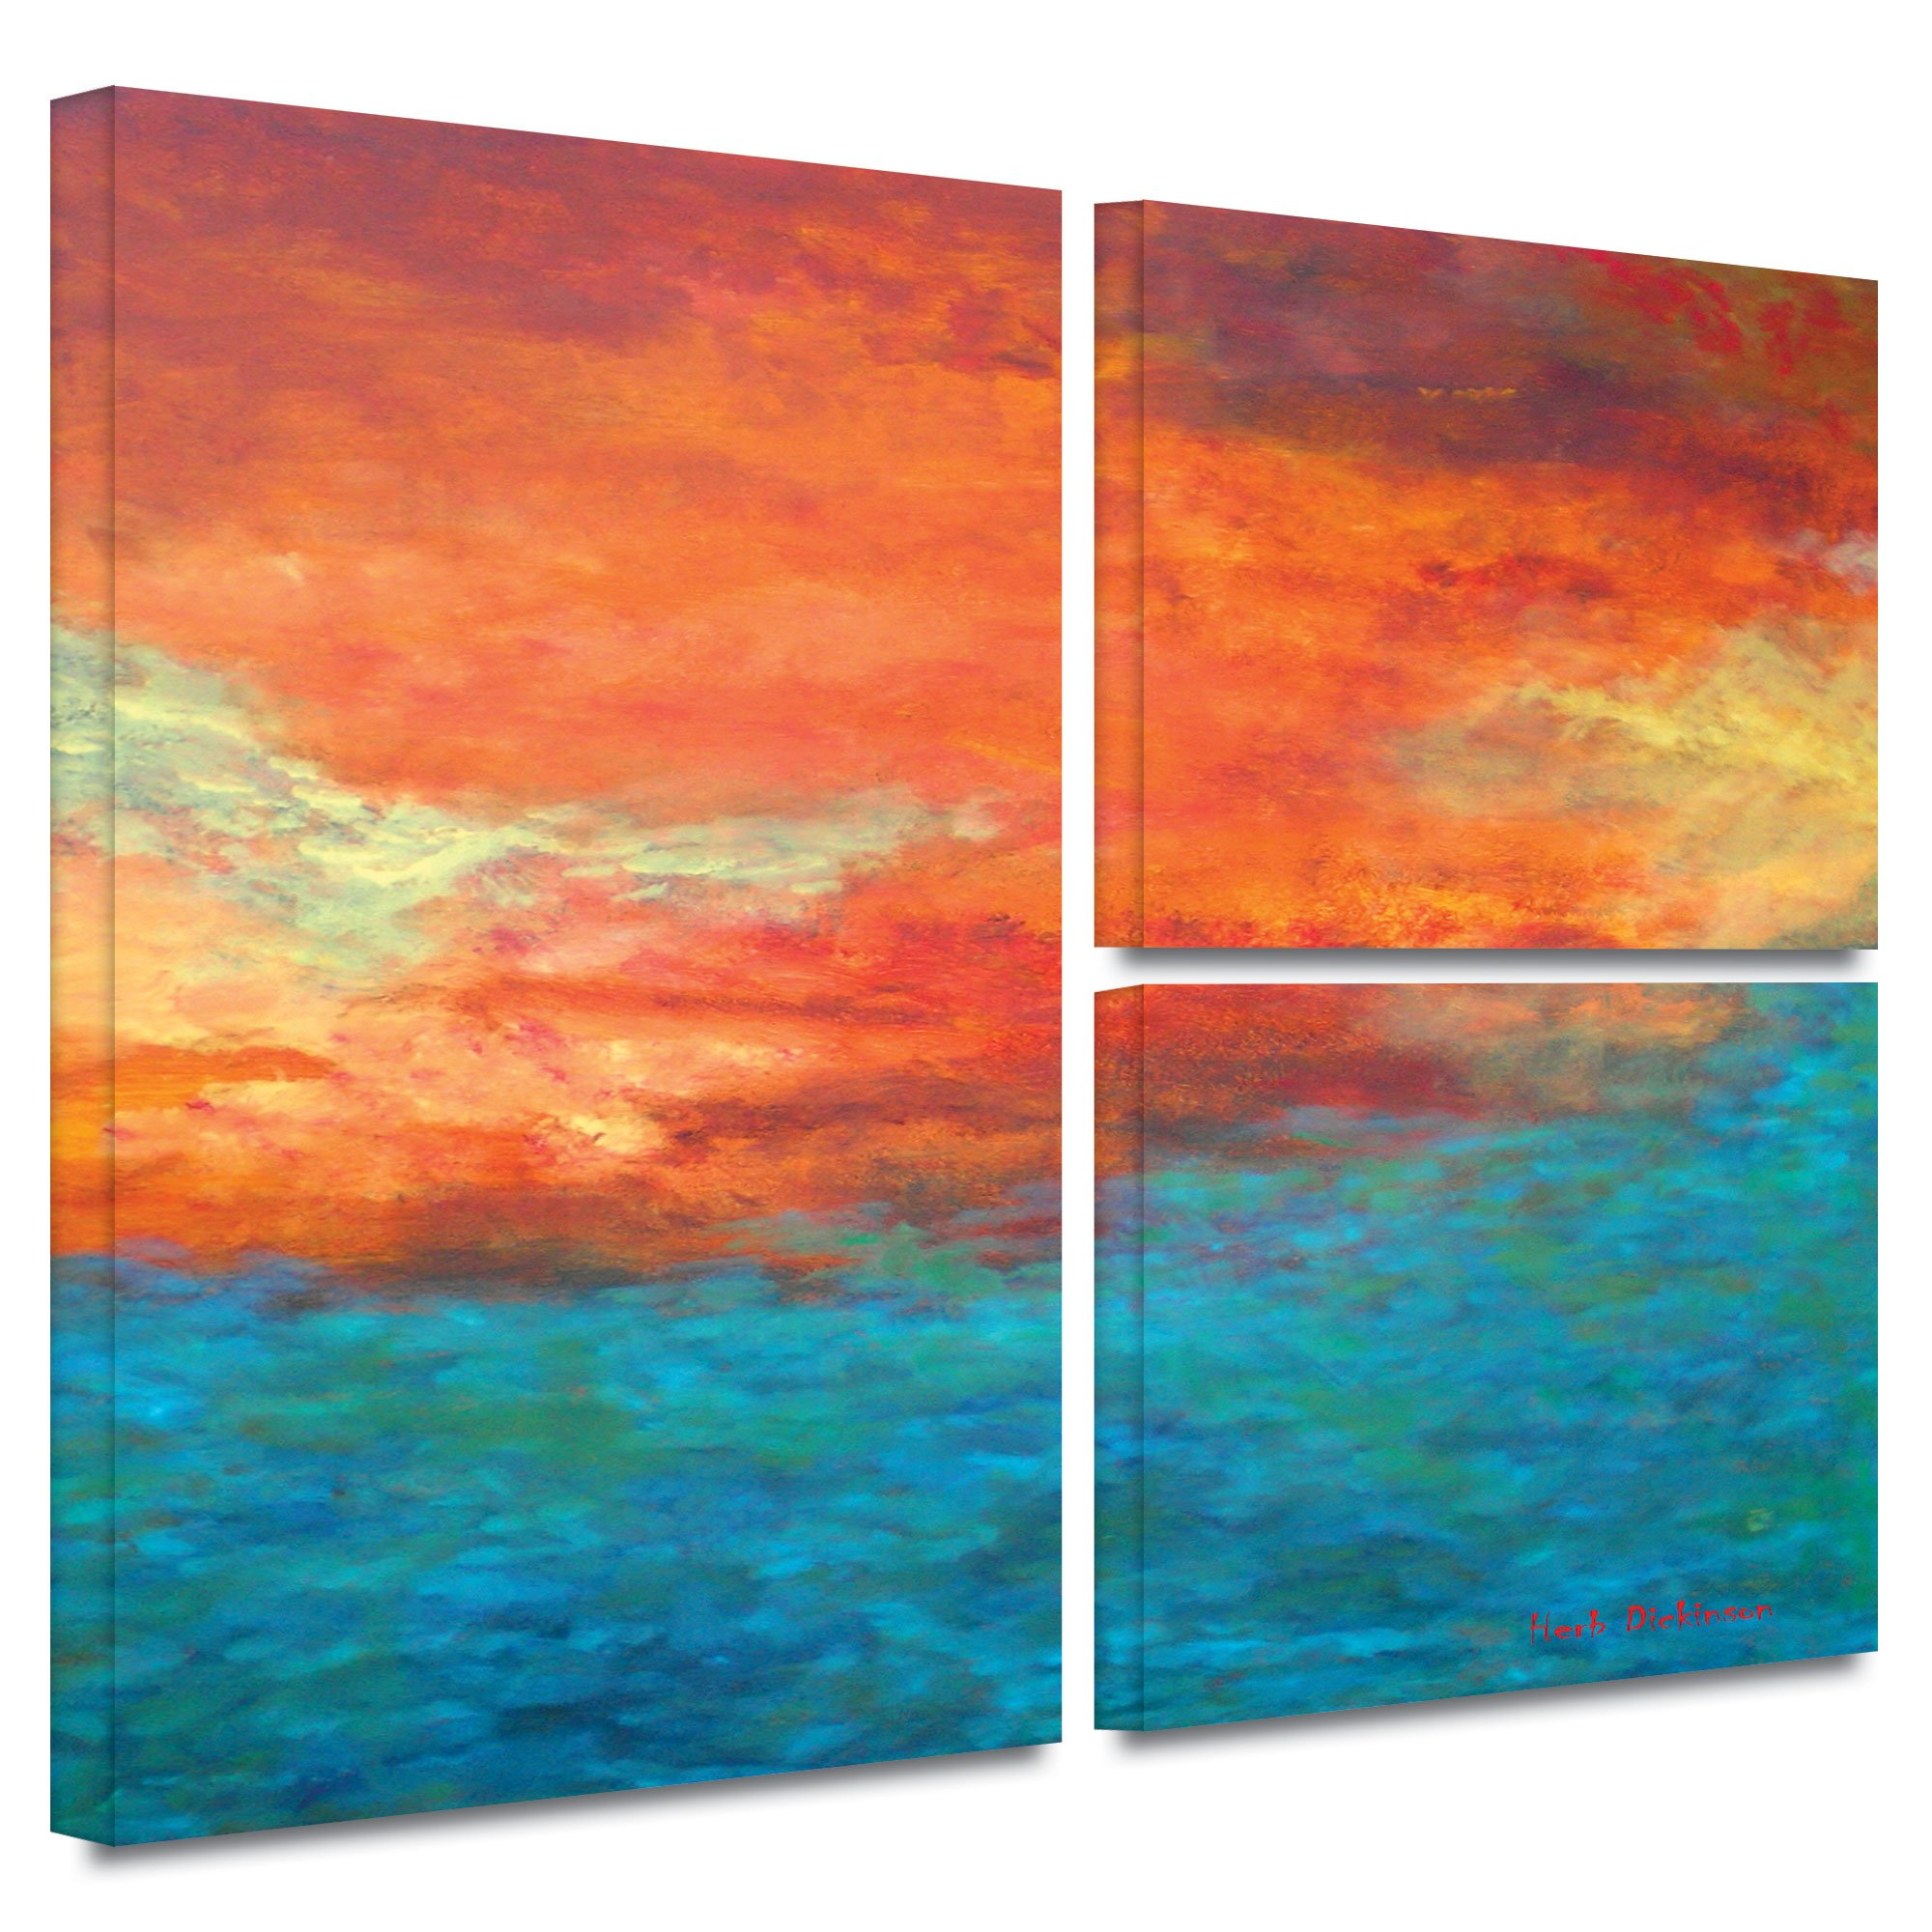 ArtWall Herb Dickinson 'Lake Reflections II' Flag 3-Piece Gallery Wrapped Canvas Artwork, 24 by 36-Inch